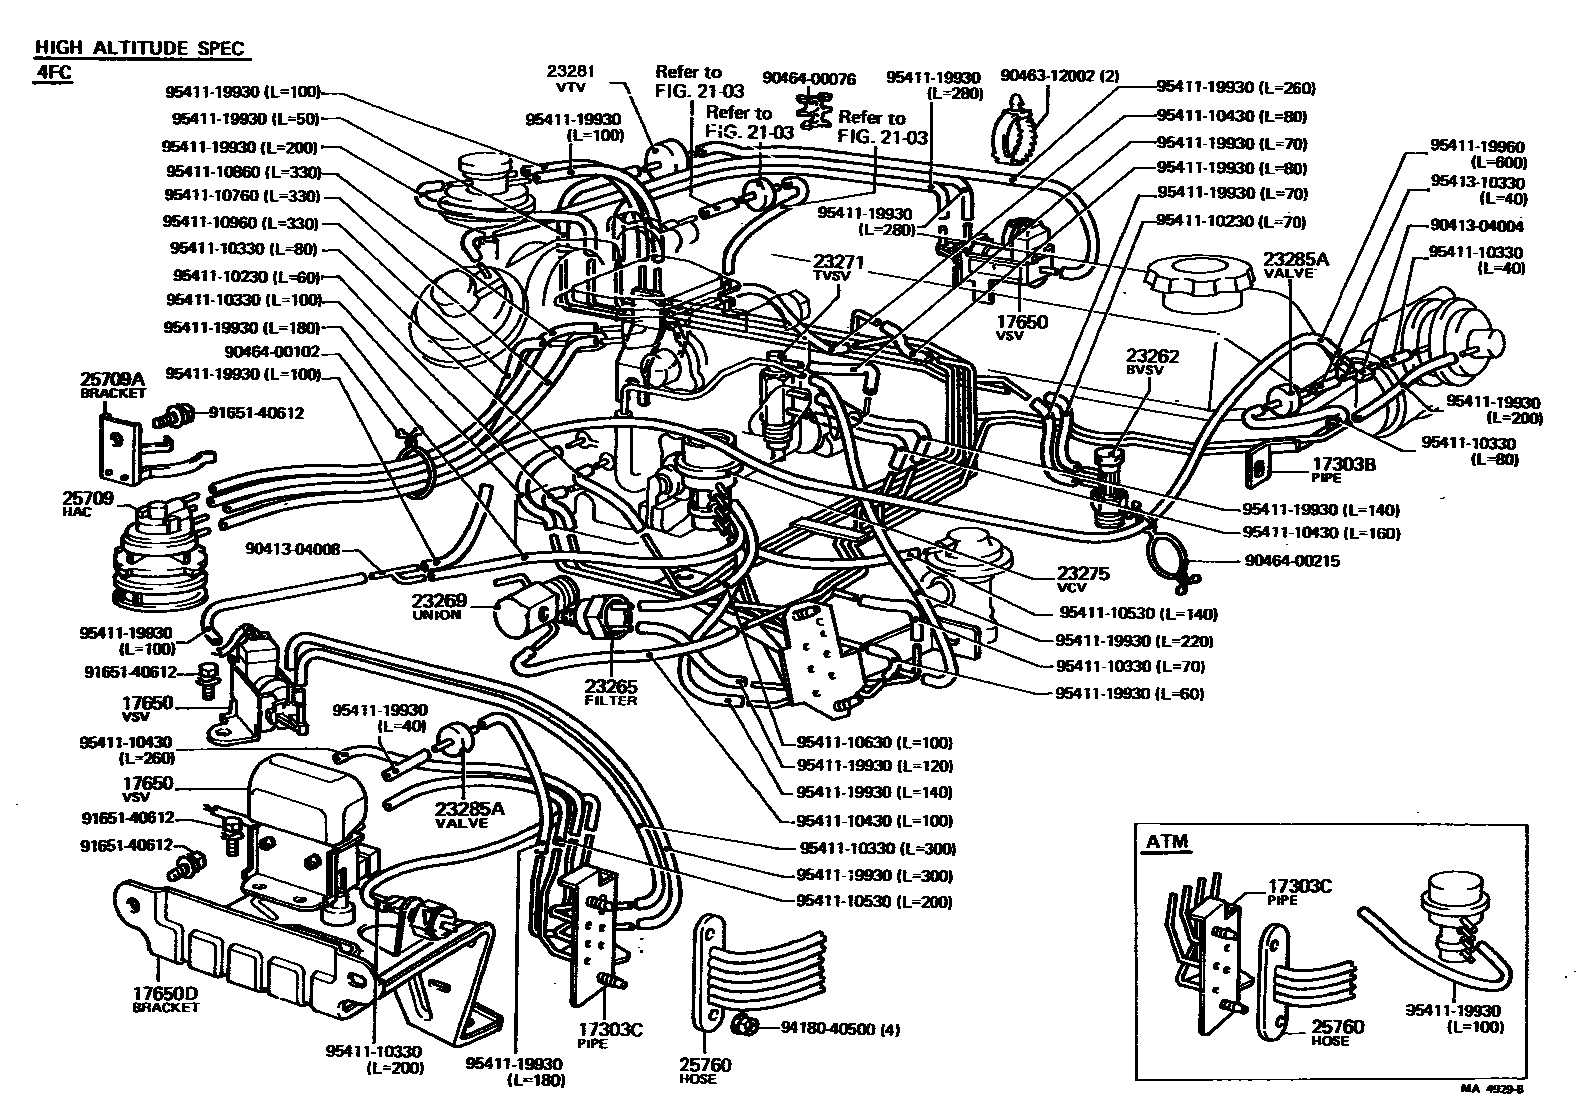 hight resolution of 2000 tundra engine diagram wiring diagram detailed 2006 toyota tundra parts diagram 2001 toyota tundra engine diagram